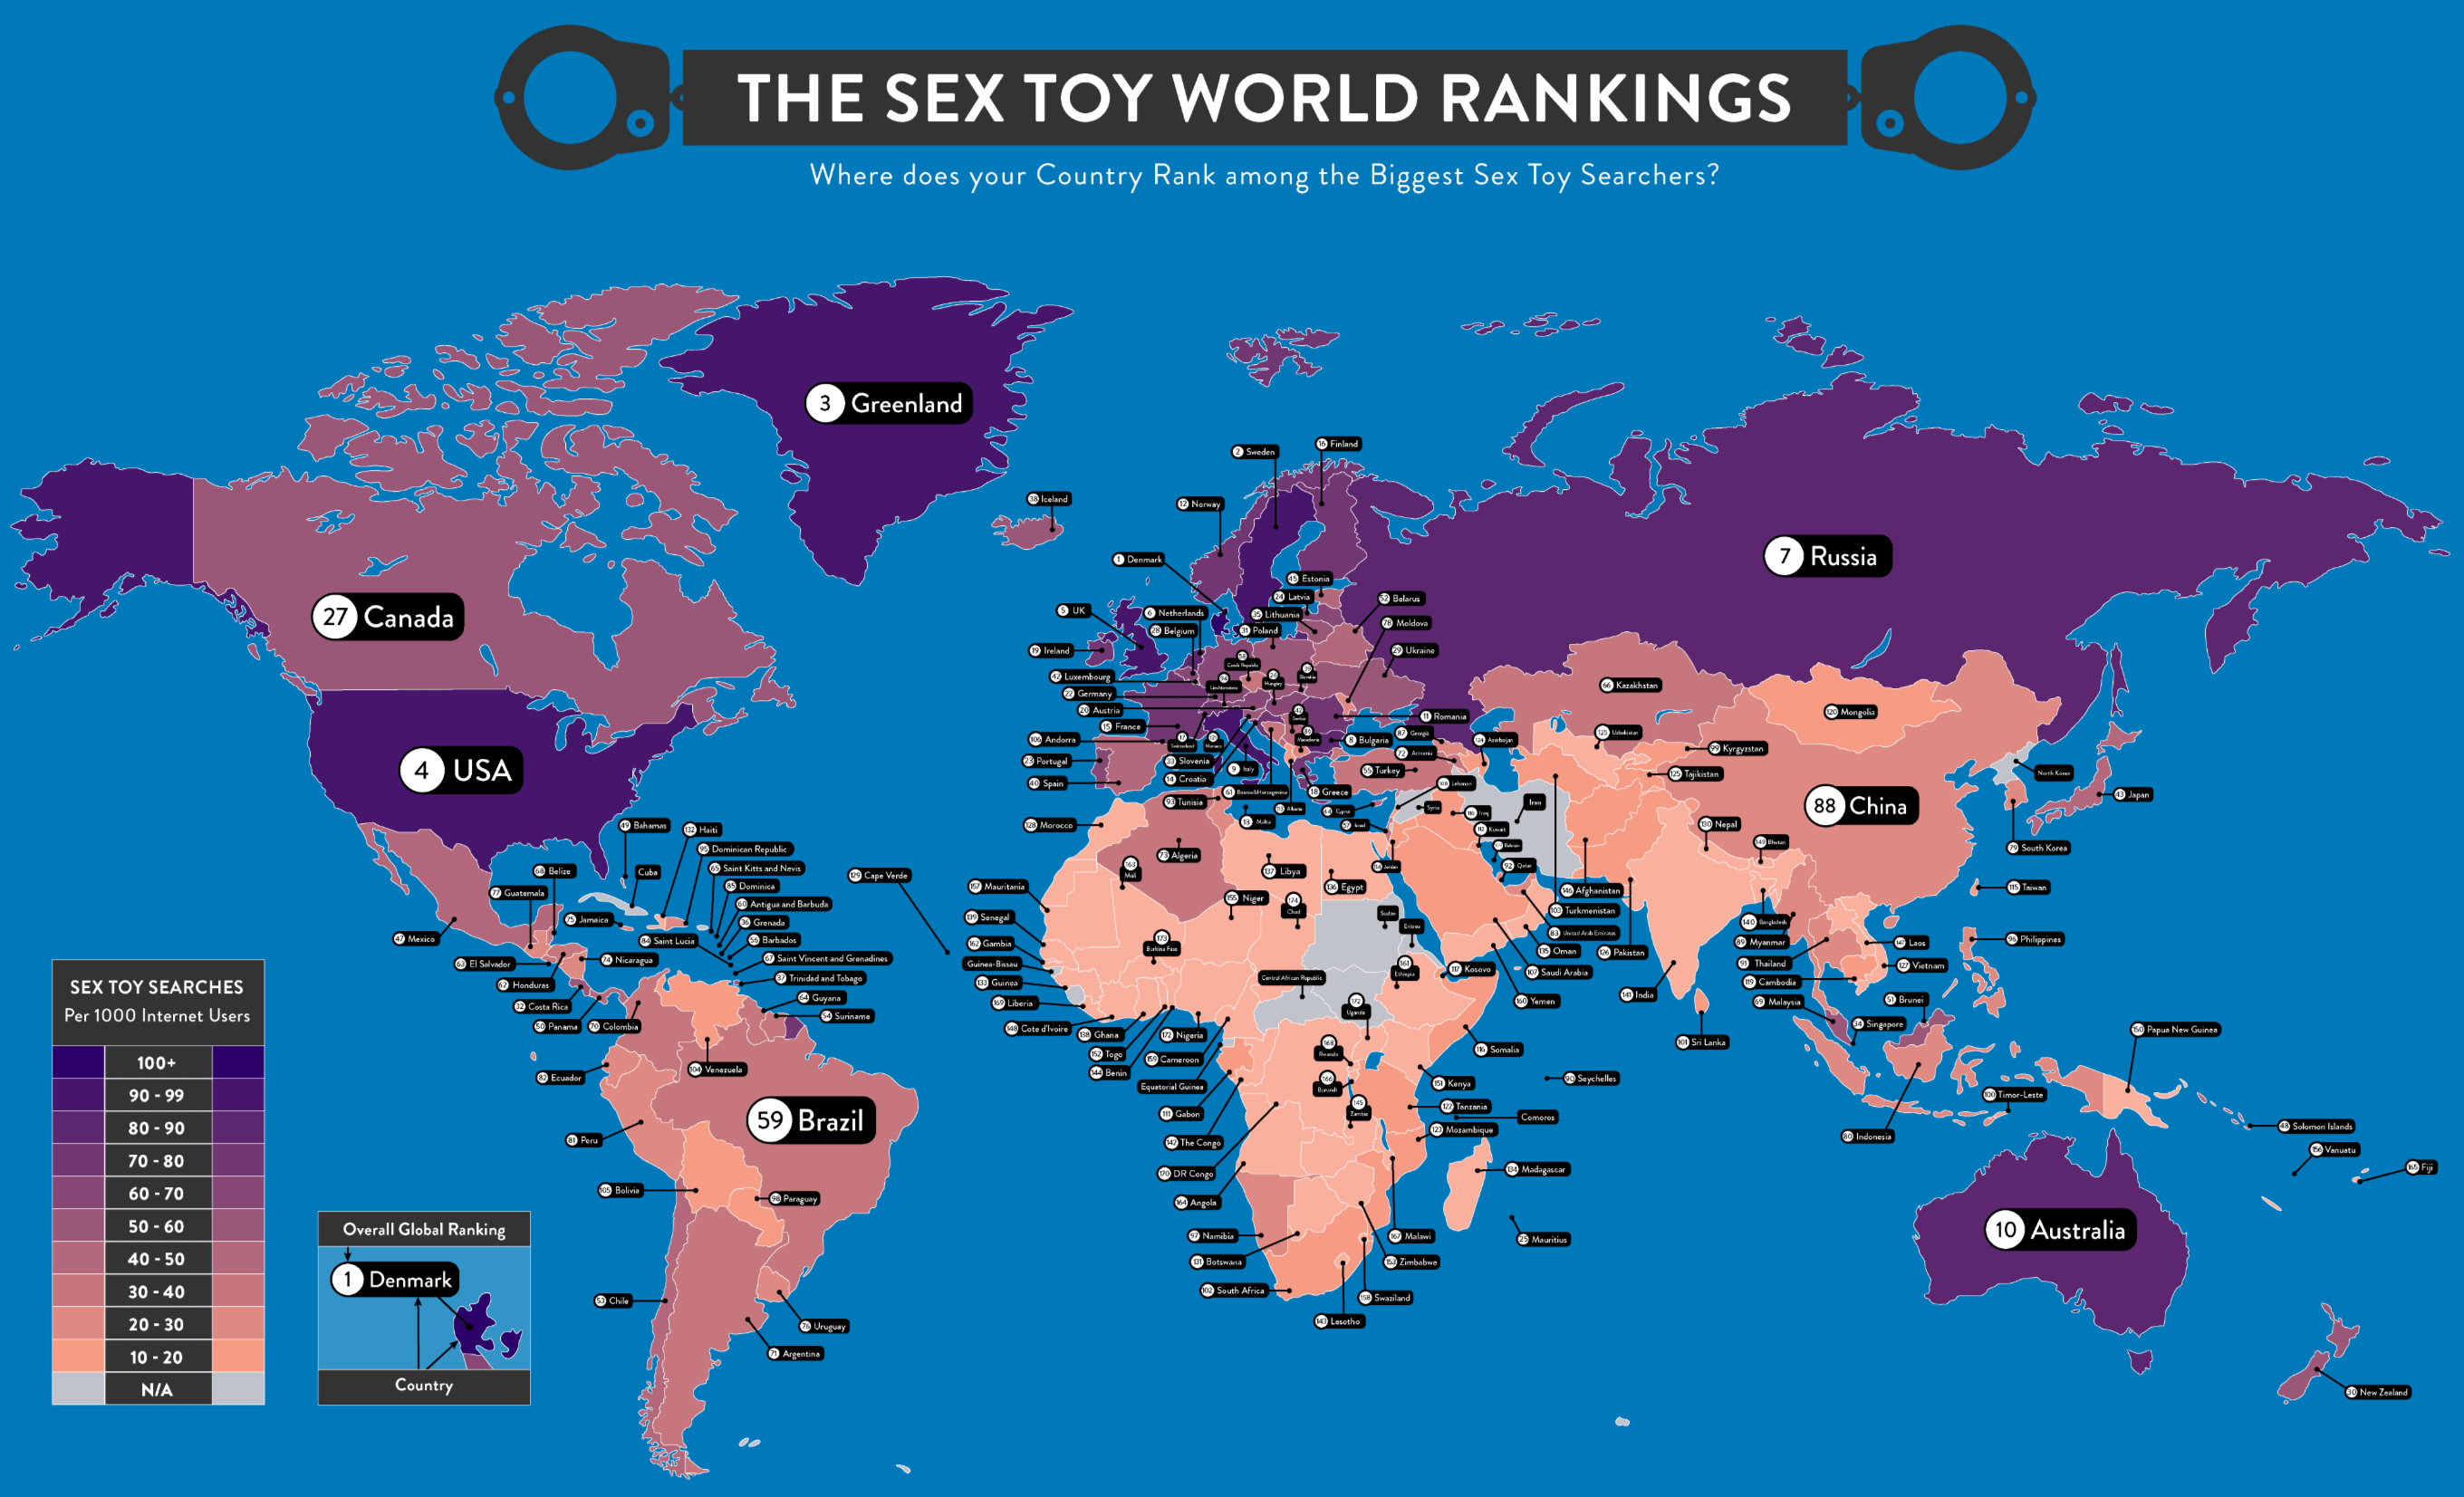 Countries that love sex toys on the map